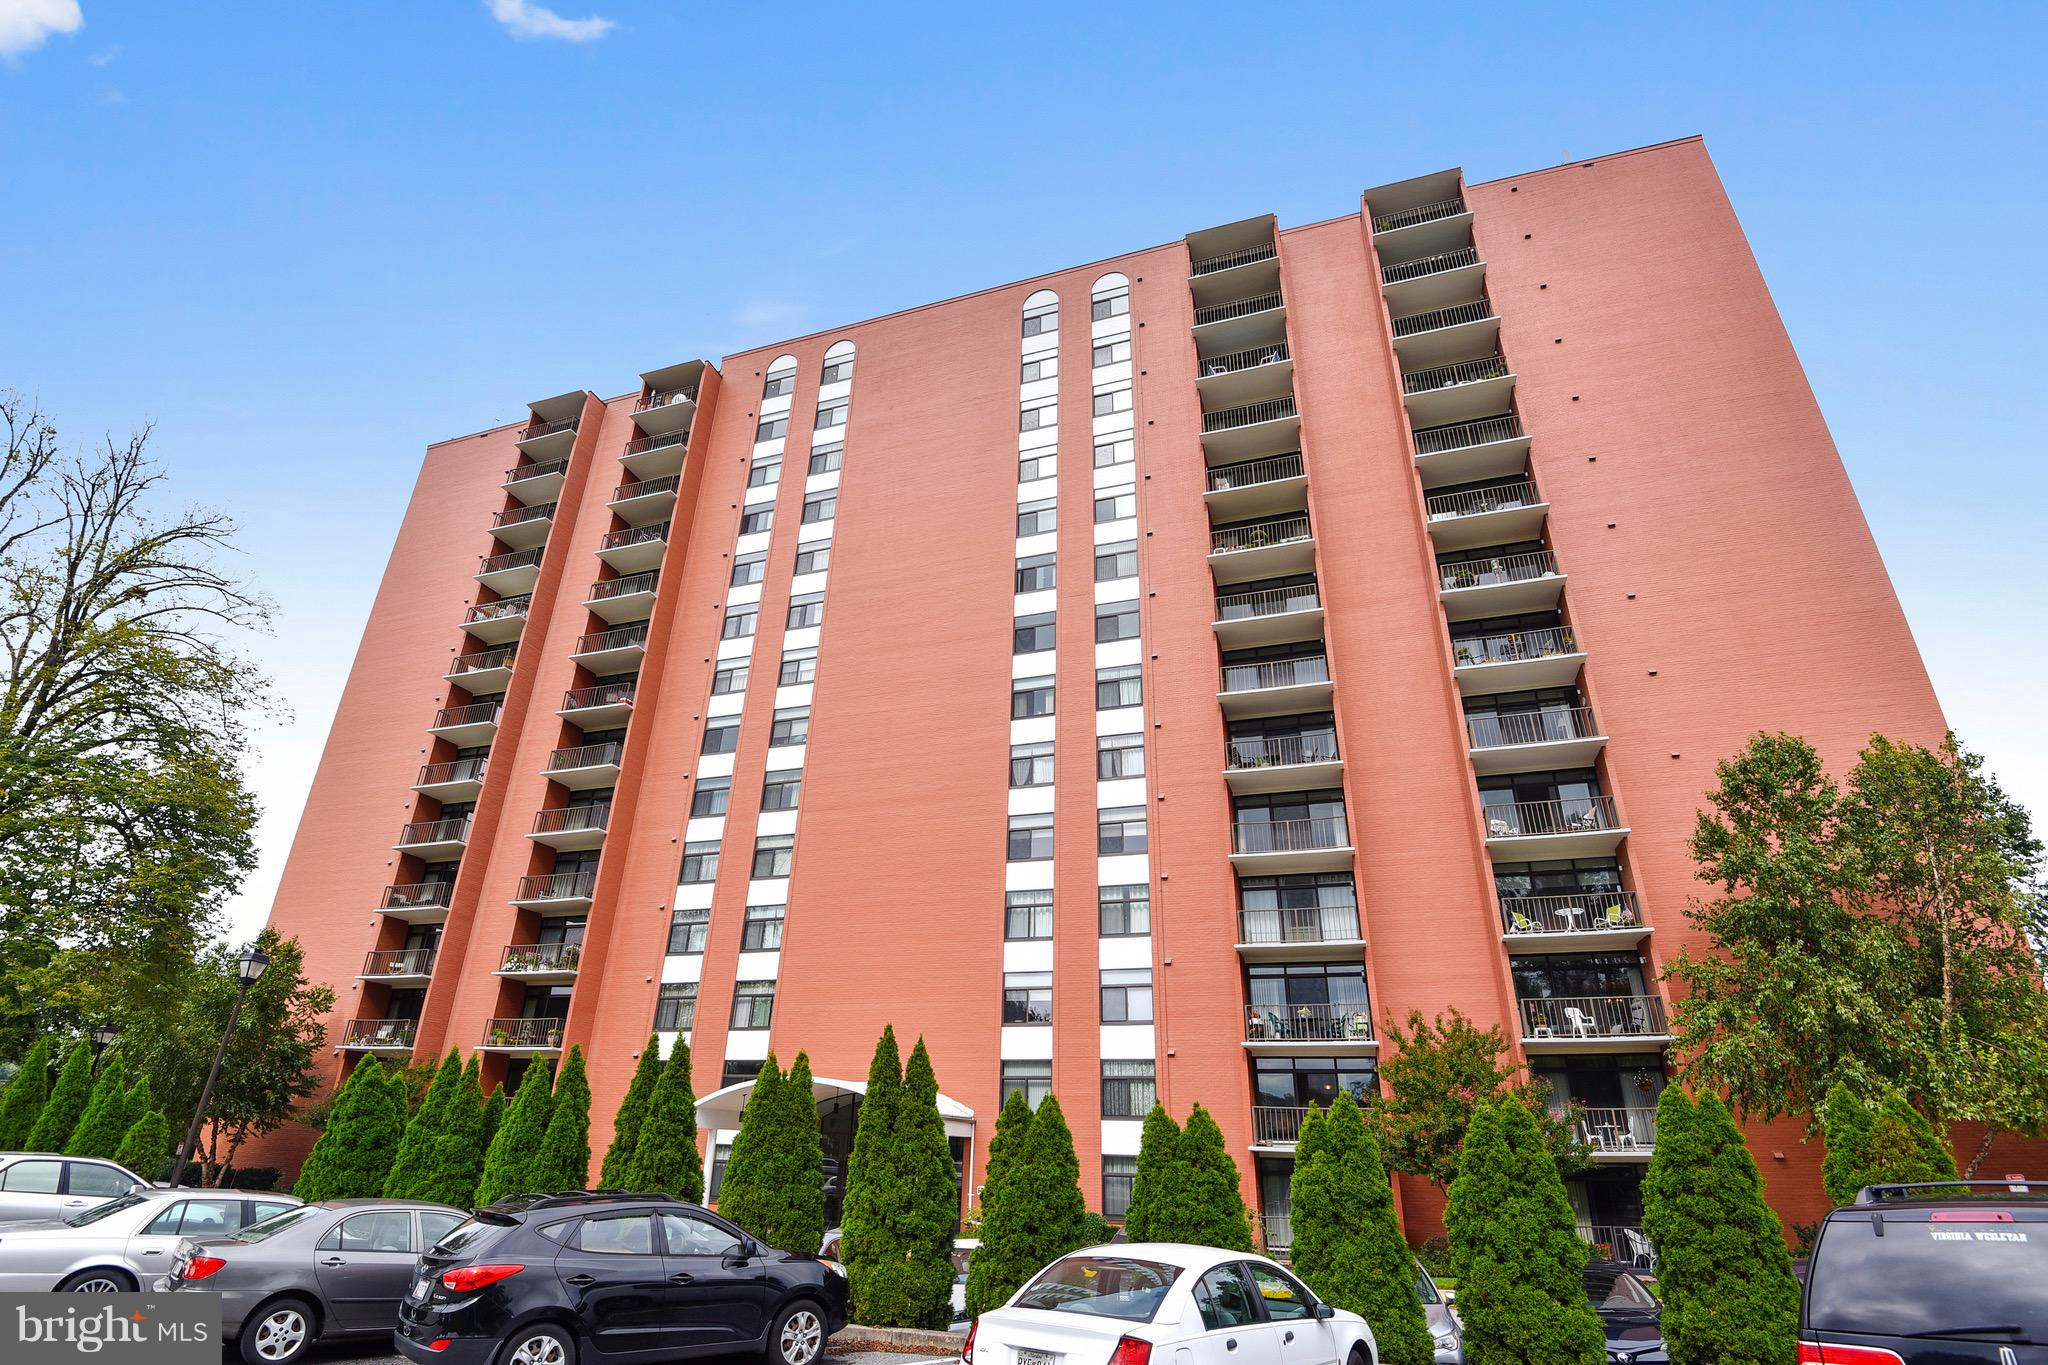 Desirable Dulaney Towers spacious two bedroom/two bath condo located in a gated community with 24 ho